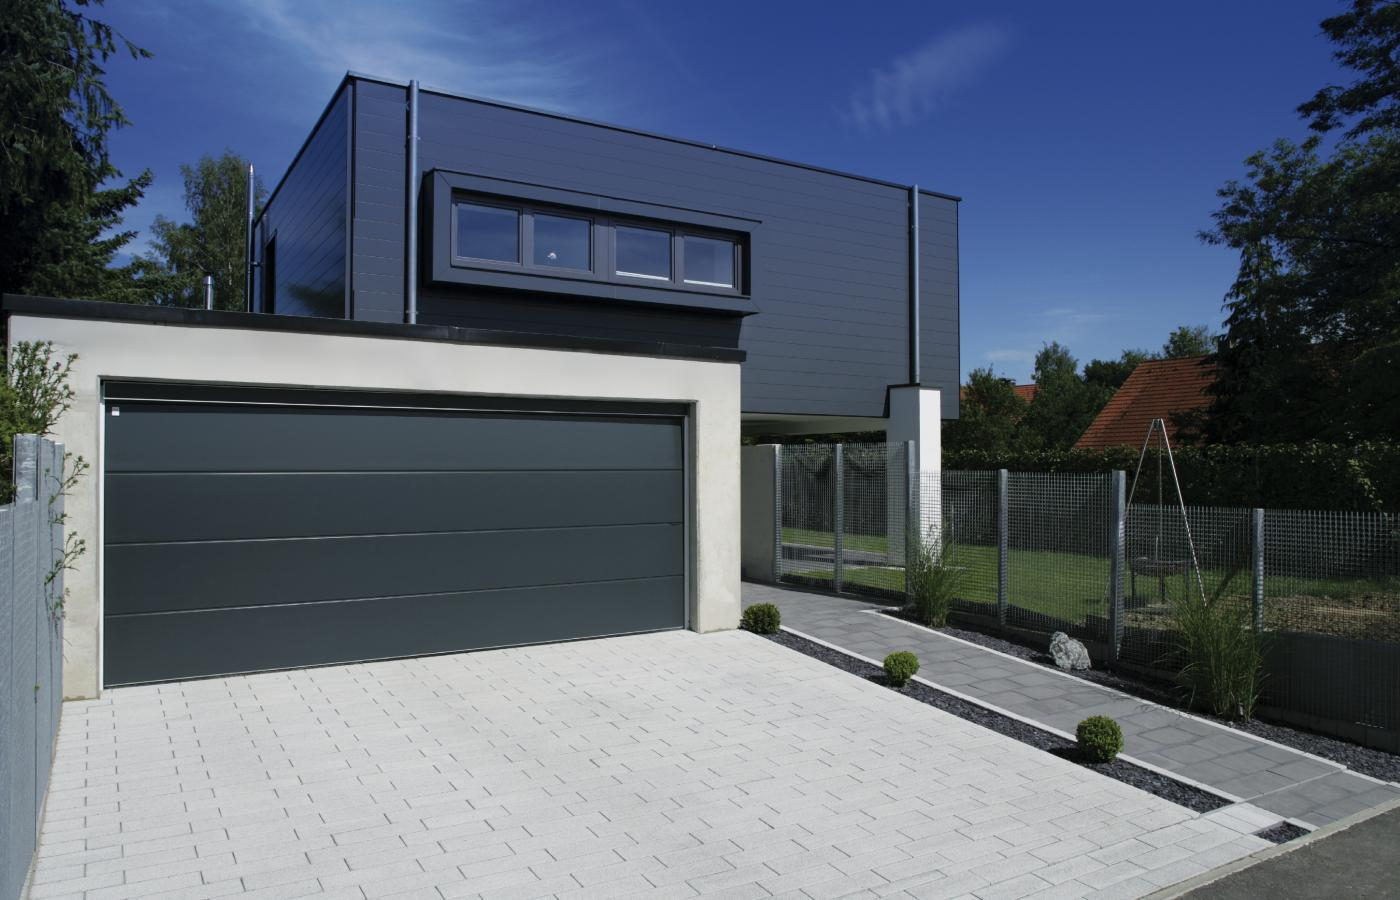 Portes de garage weigerding - Largeur porte garage ...